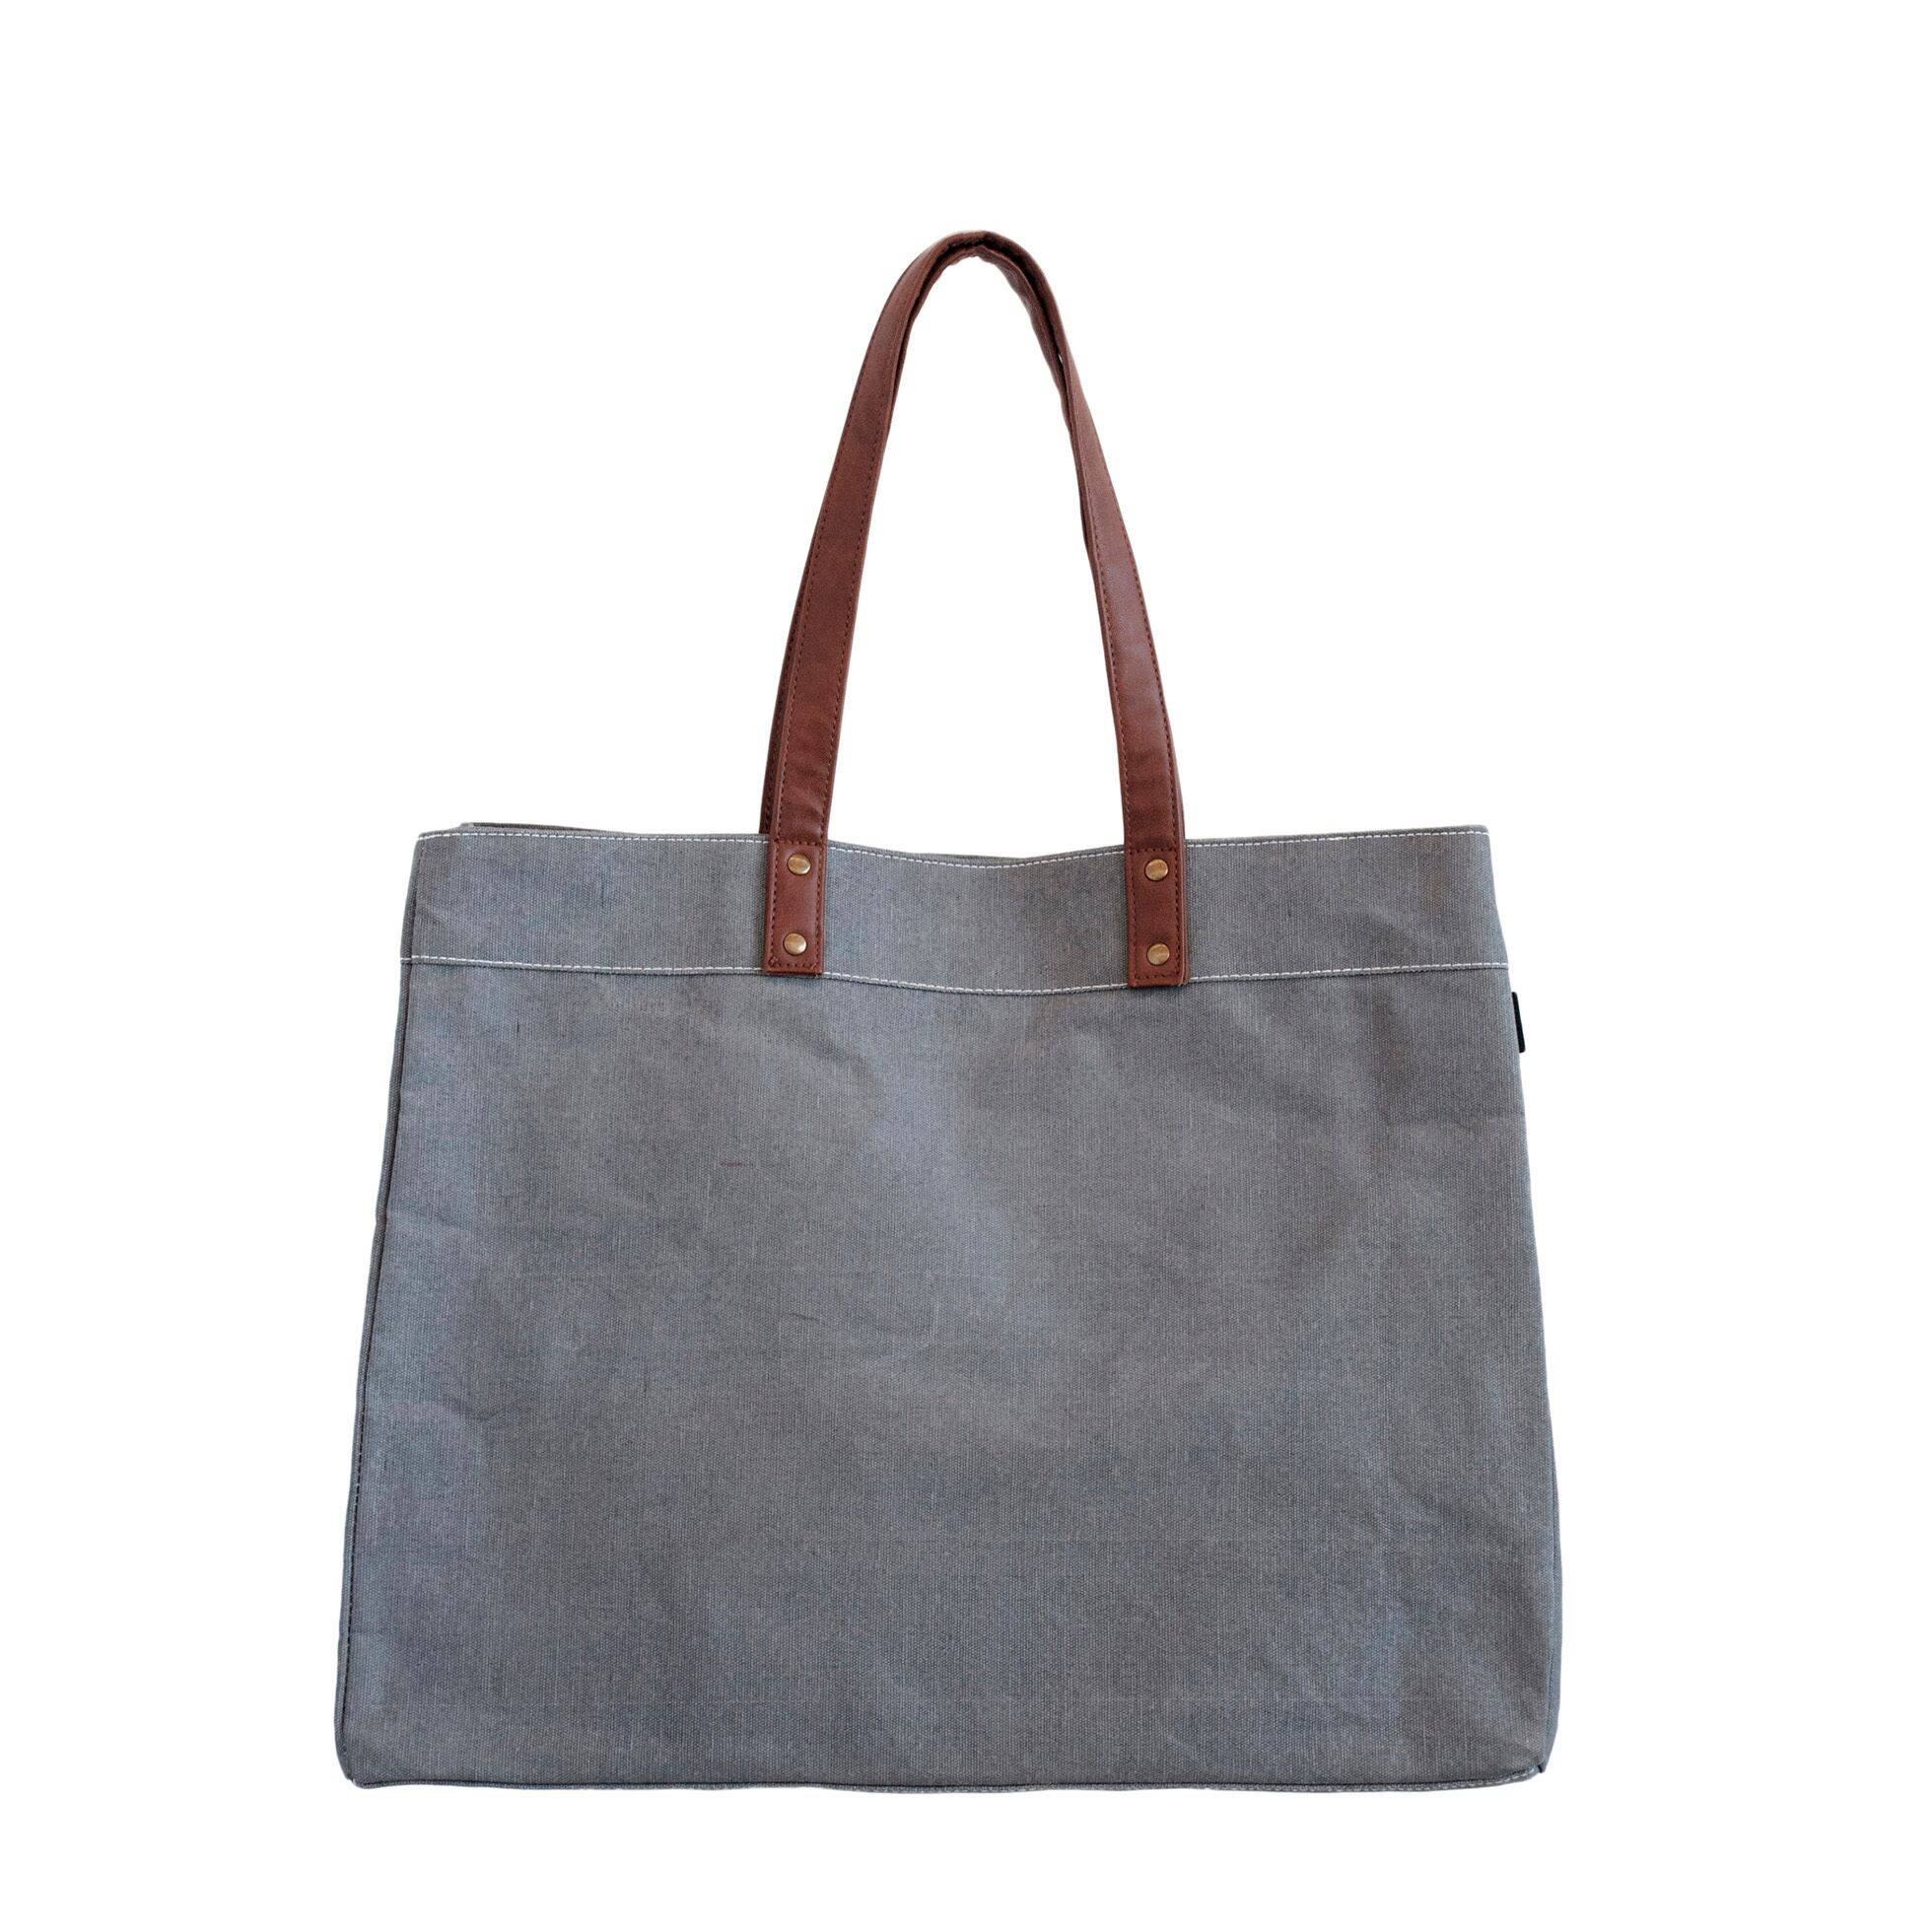 Maika Goods Maika Carryall Tote Plus with Pockets